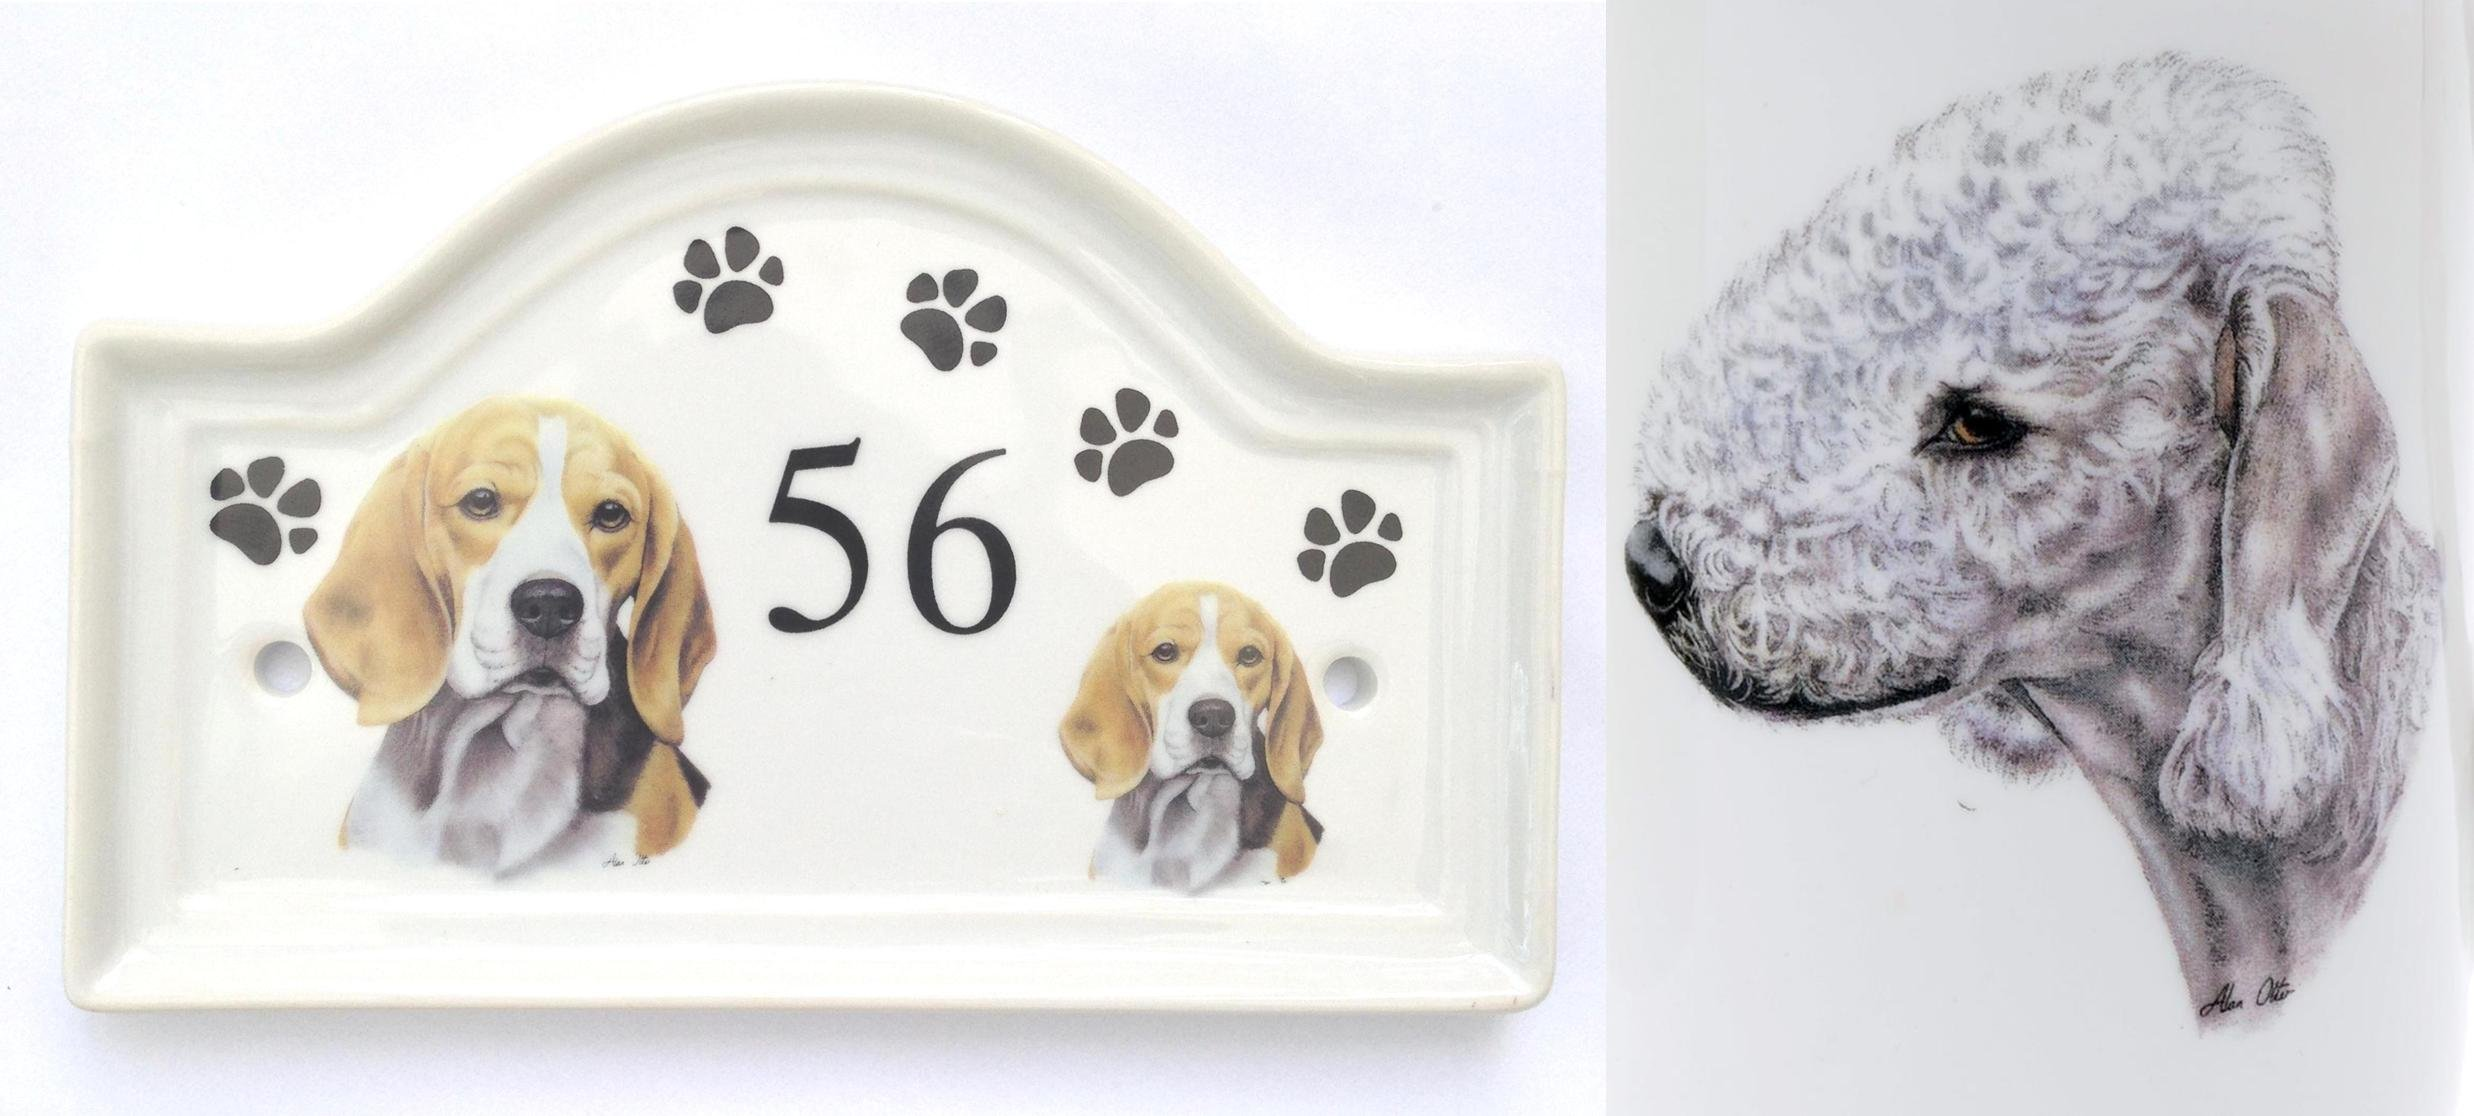 (BB6) House Door Number Plaque plate Ceramic BEDLINGTON TERRIER Dog Breed Number Sign Any Number Available Hand Decorated in the U.K. Free UK Delivery Any breed- any house number- Dog House Door Plaque Porcelain Outdoor Plaques PAWPRINTS,